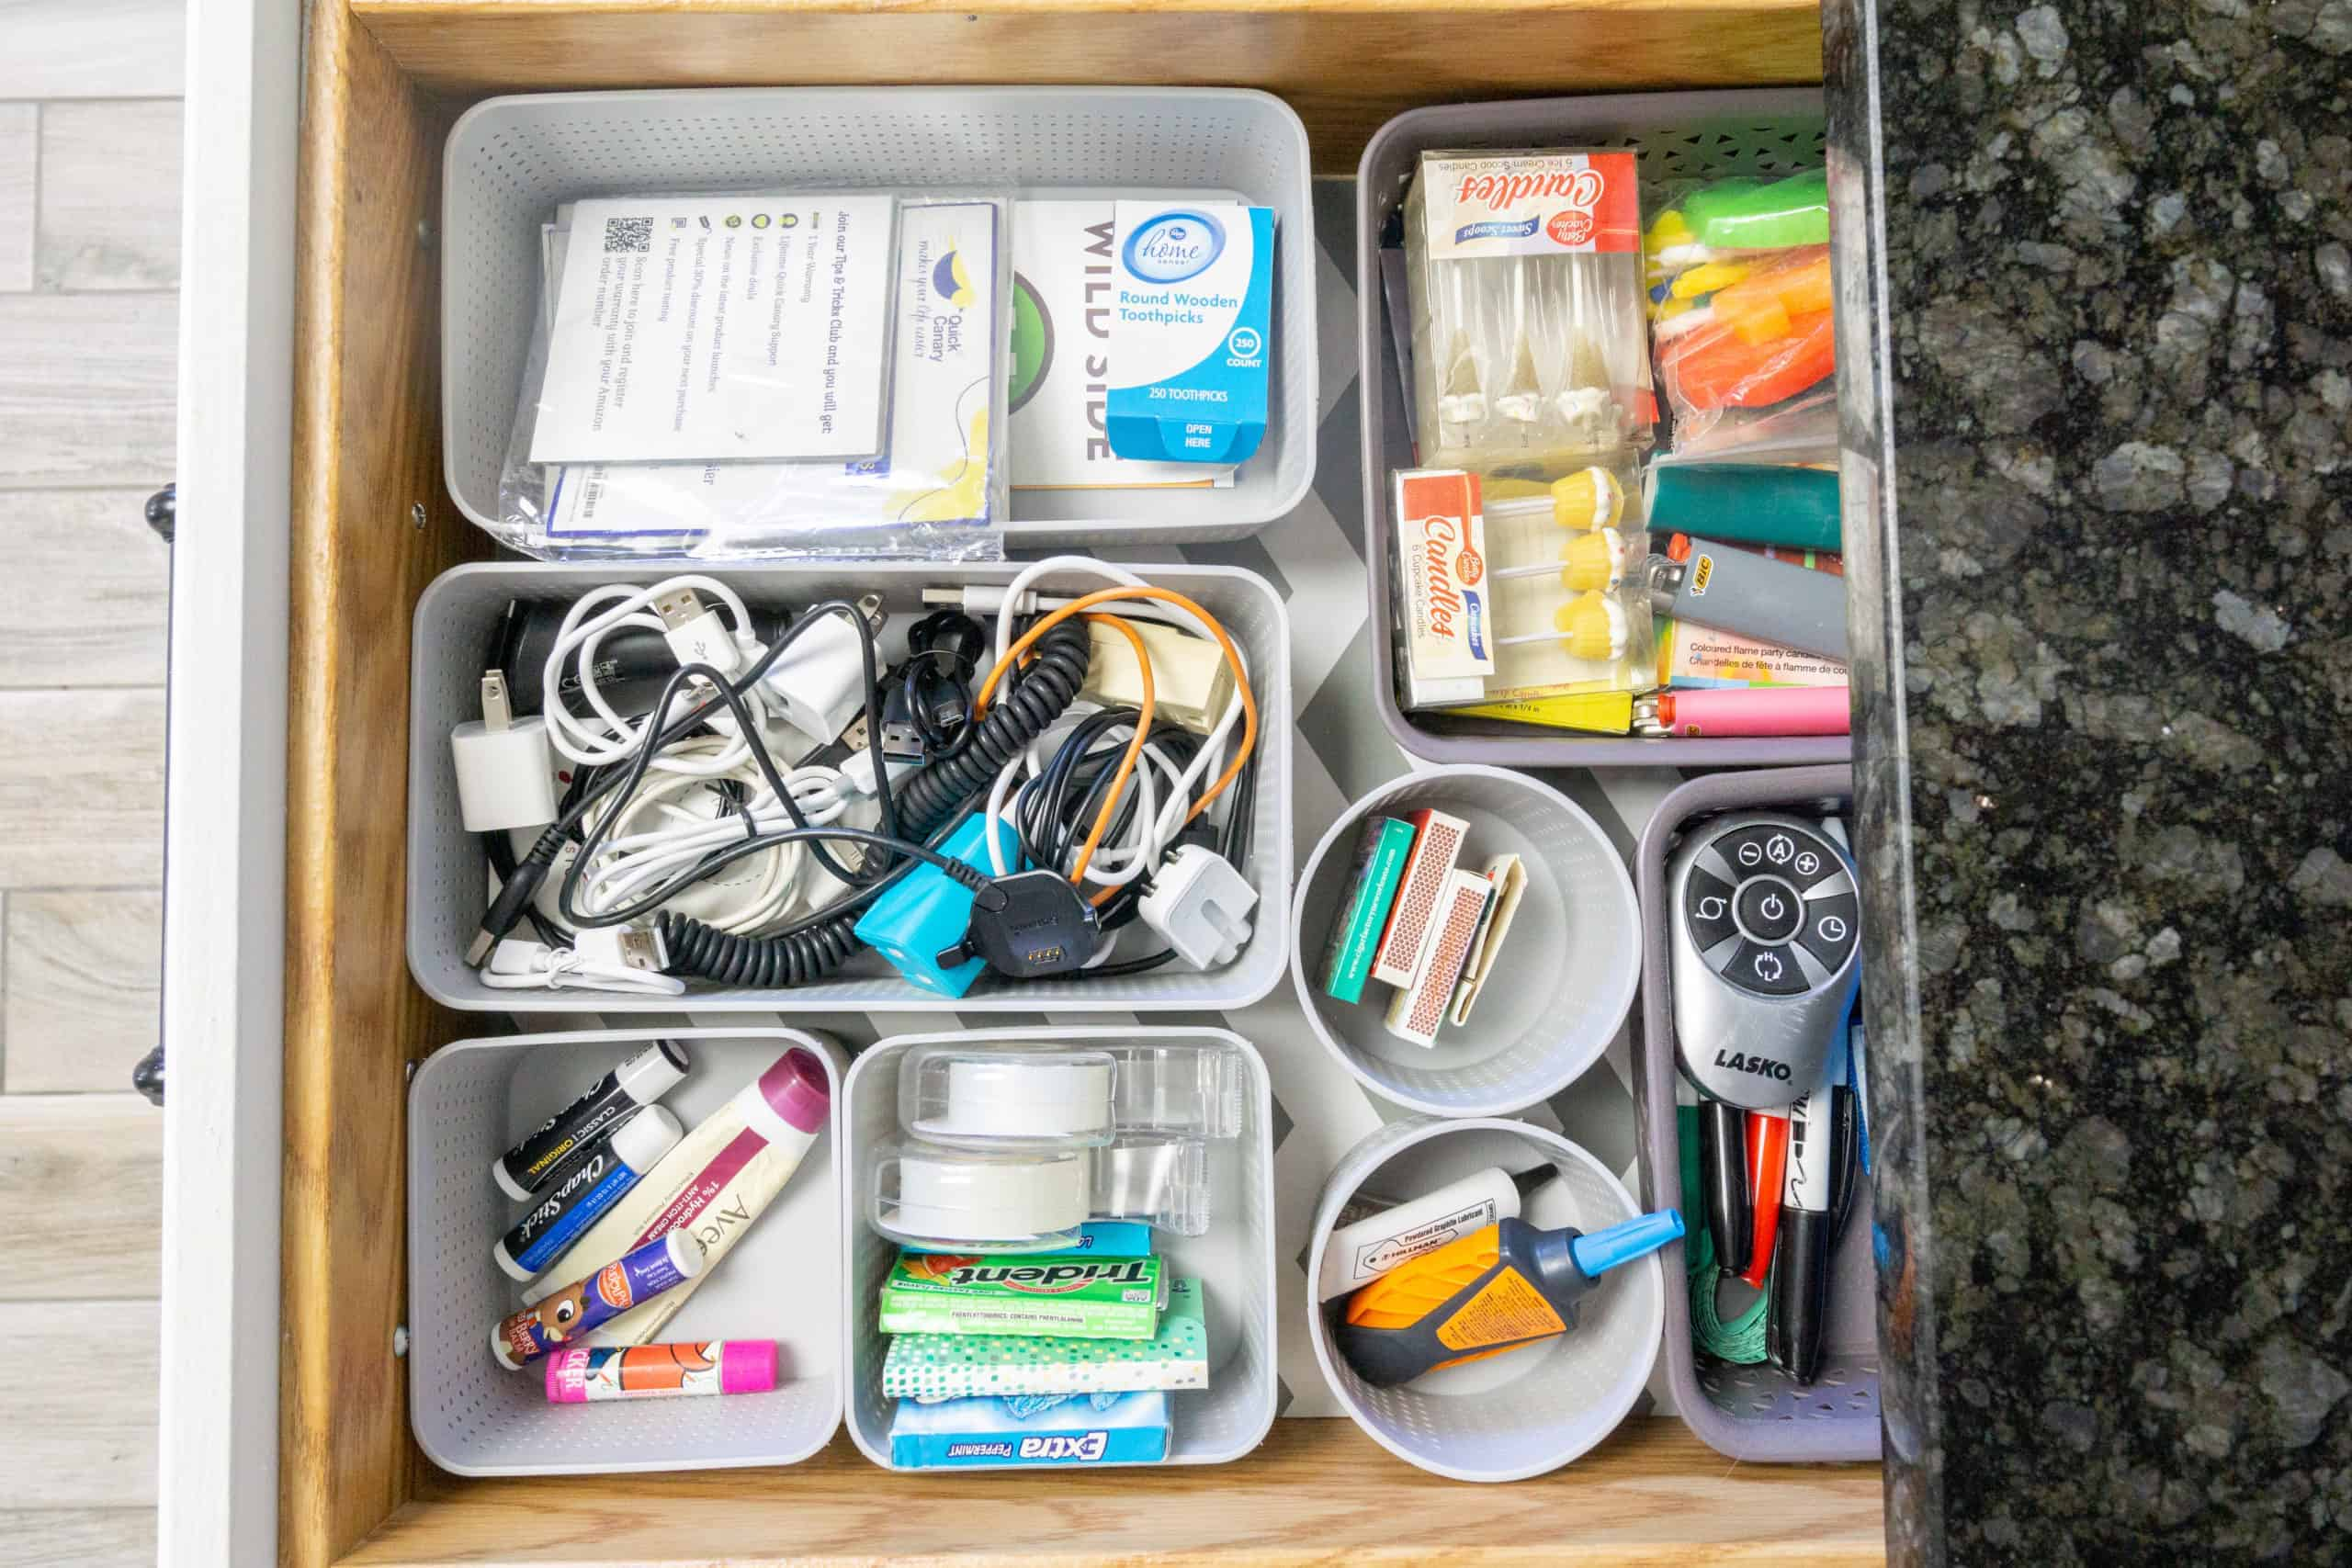 Let me show you how to organize the junk drawer for good. It is a fast an easy project that can have a big impact within your home.